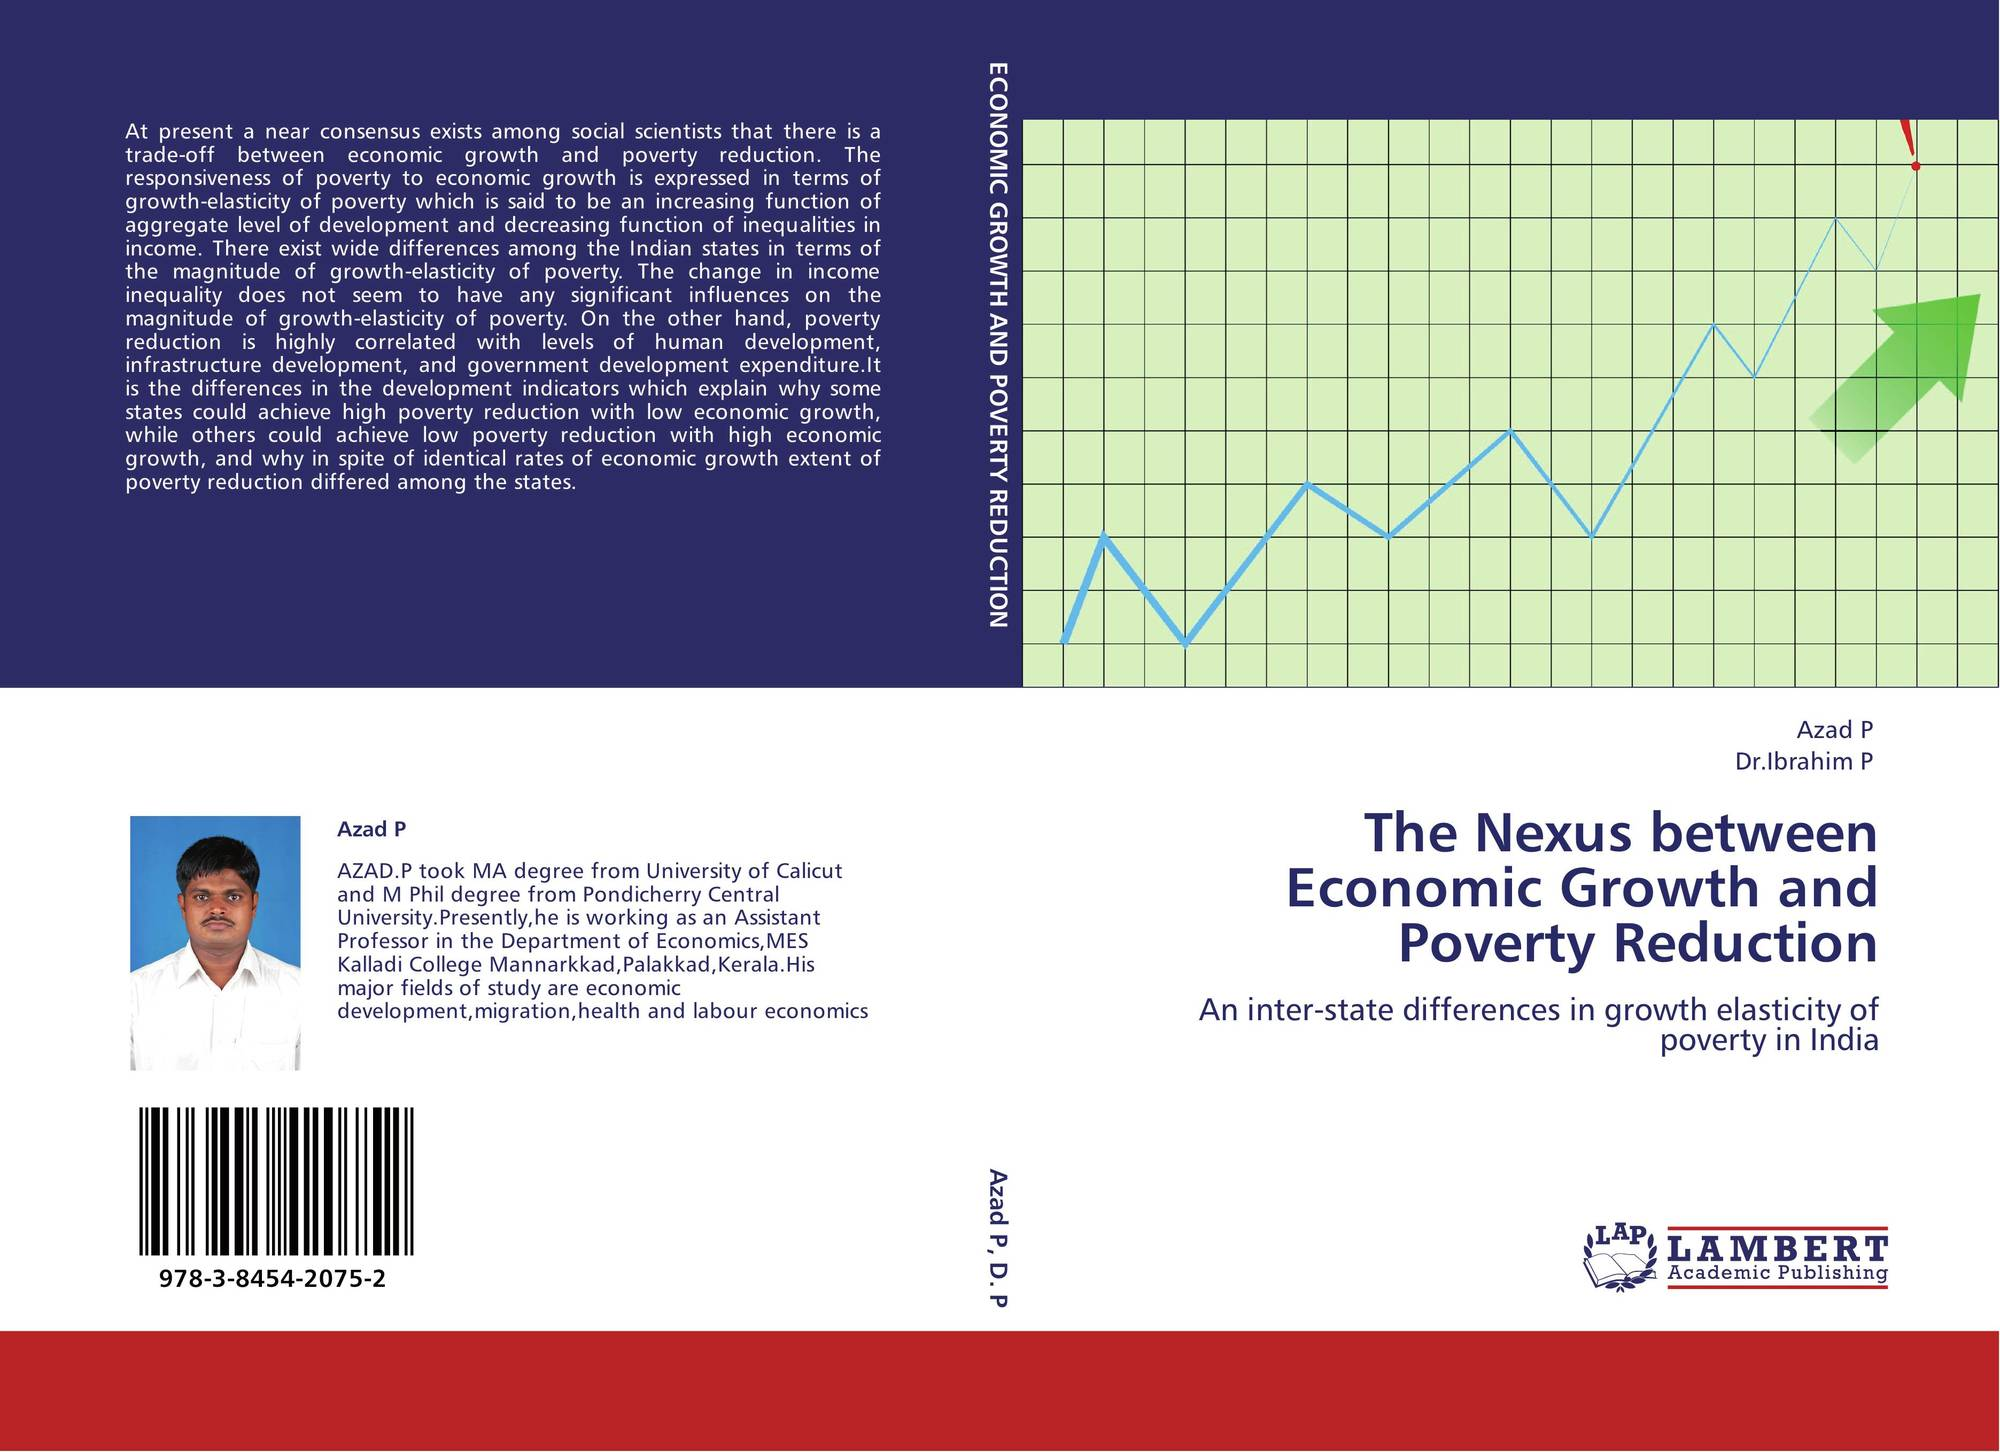 thesis of economic growth Economy growth is an important point to bring better living standards and lower rates of poverty the average income of people can said that increases and indirectly people able to consume more and motivate the economic growth increasing economic growth stimulates employment the economic growth.